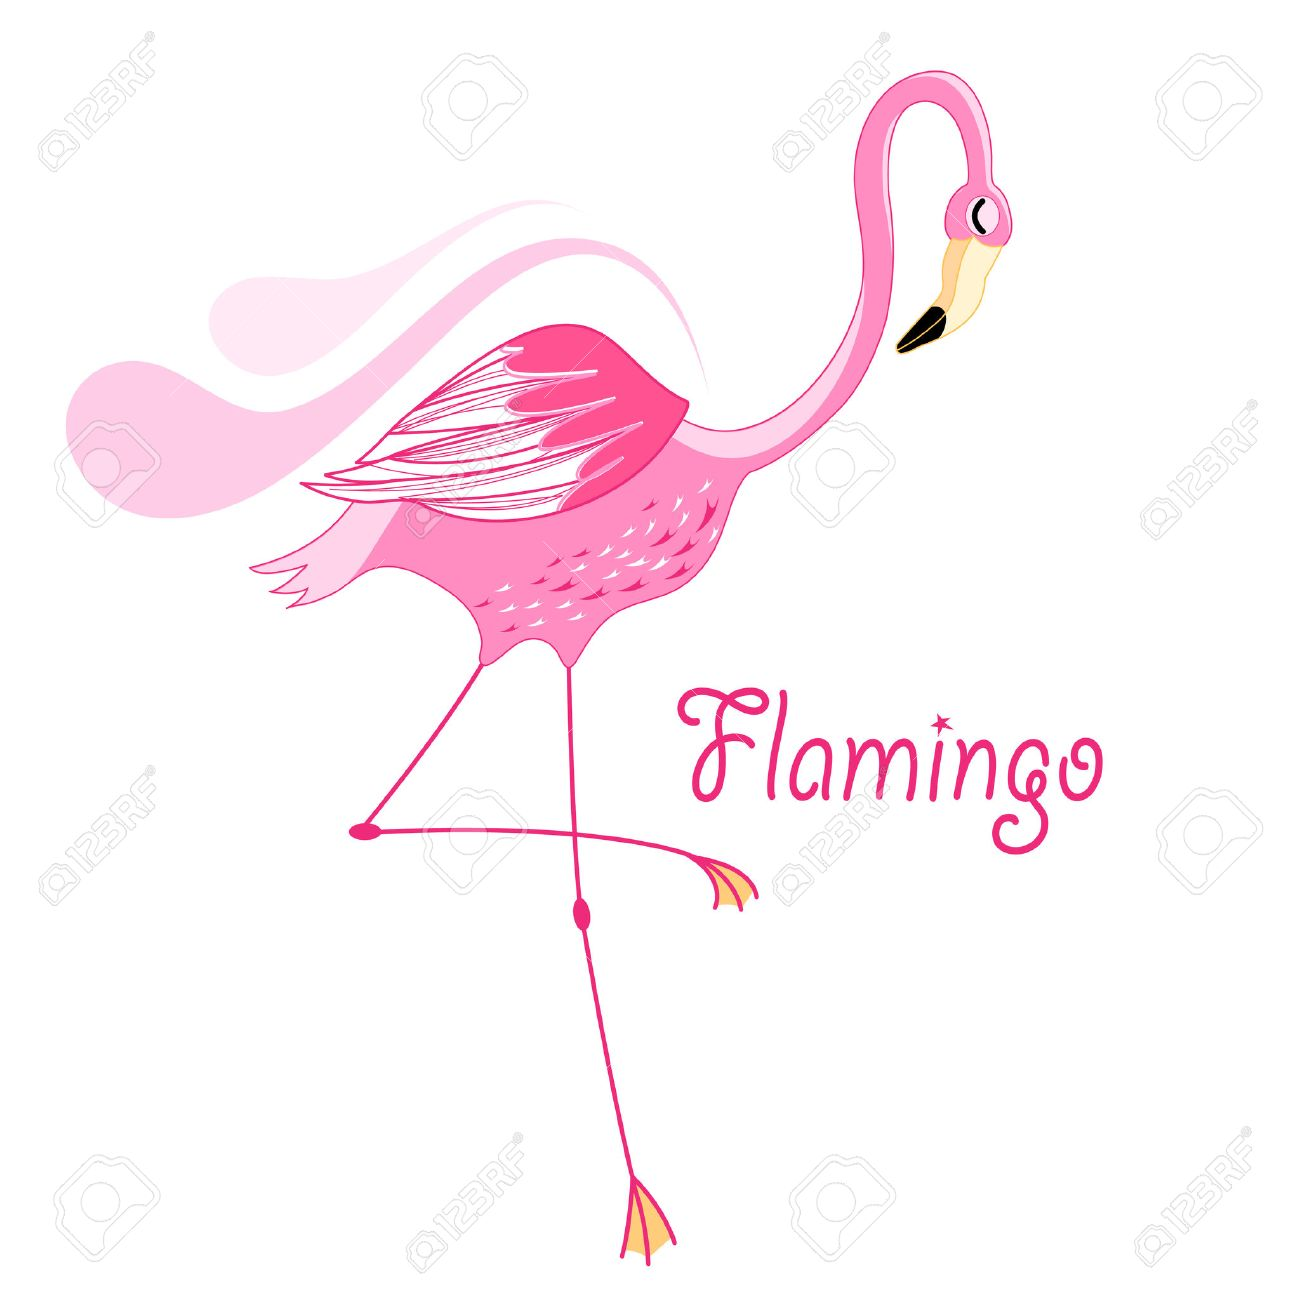 bright pink flamingo graphic on white background - 28599042